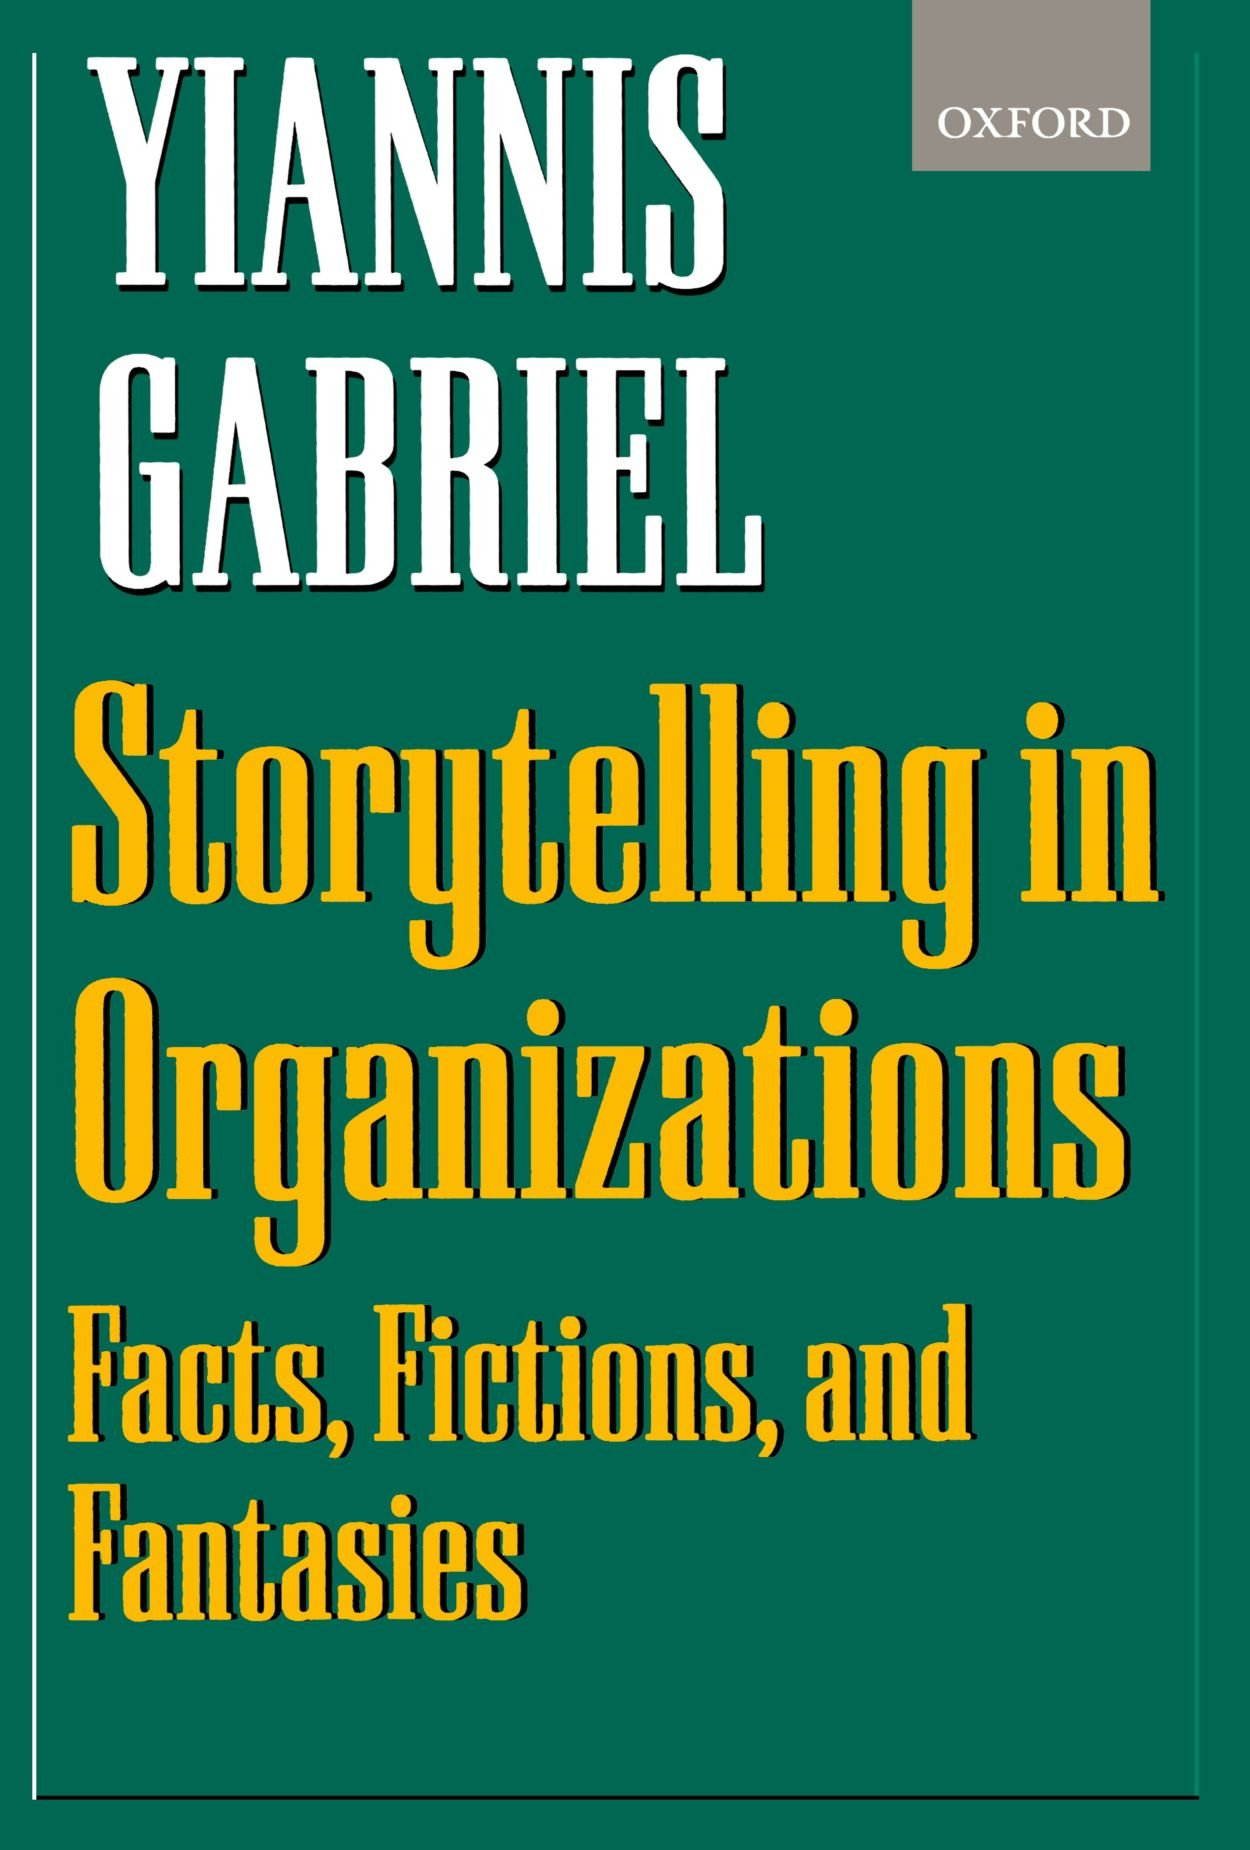 Storytelling in Organizations: Facts, Fictions, and Fantasies by Oxford University Press